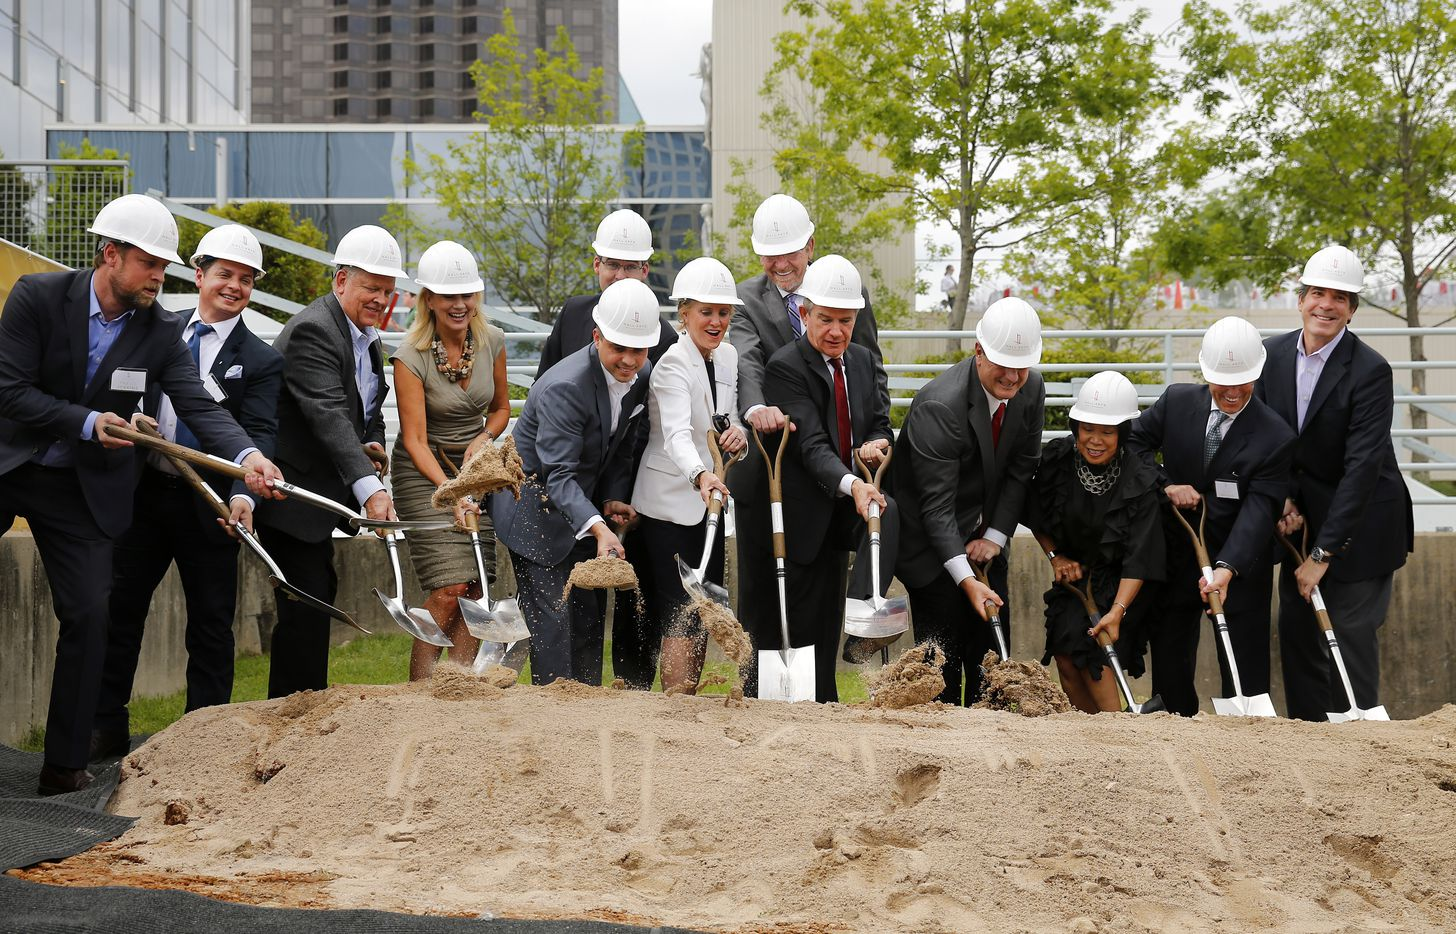 Hall Arts Hotel and Residences team members along with city and arts representatives shovel dirt to break ground on the Hall Arts Hotel and Residences.